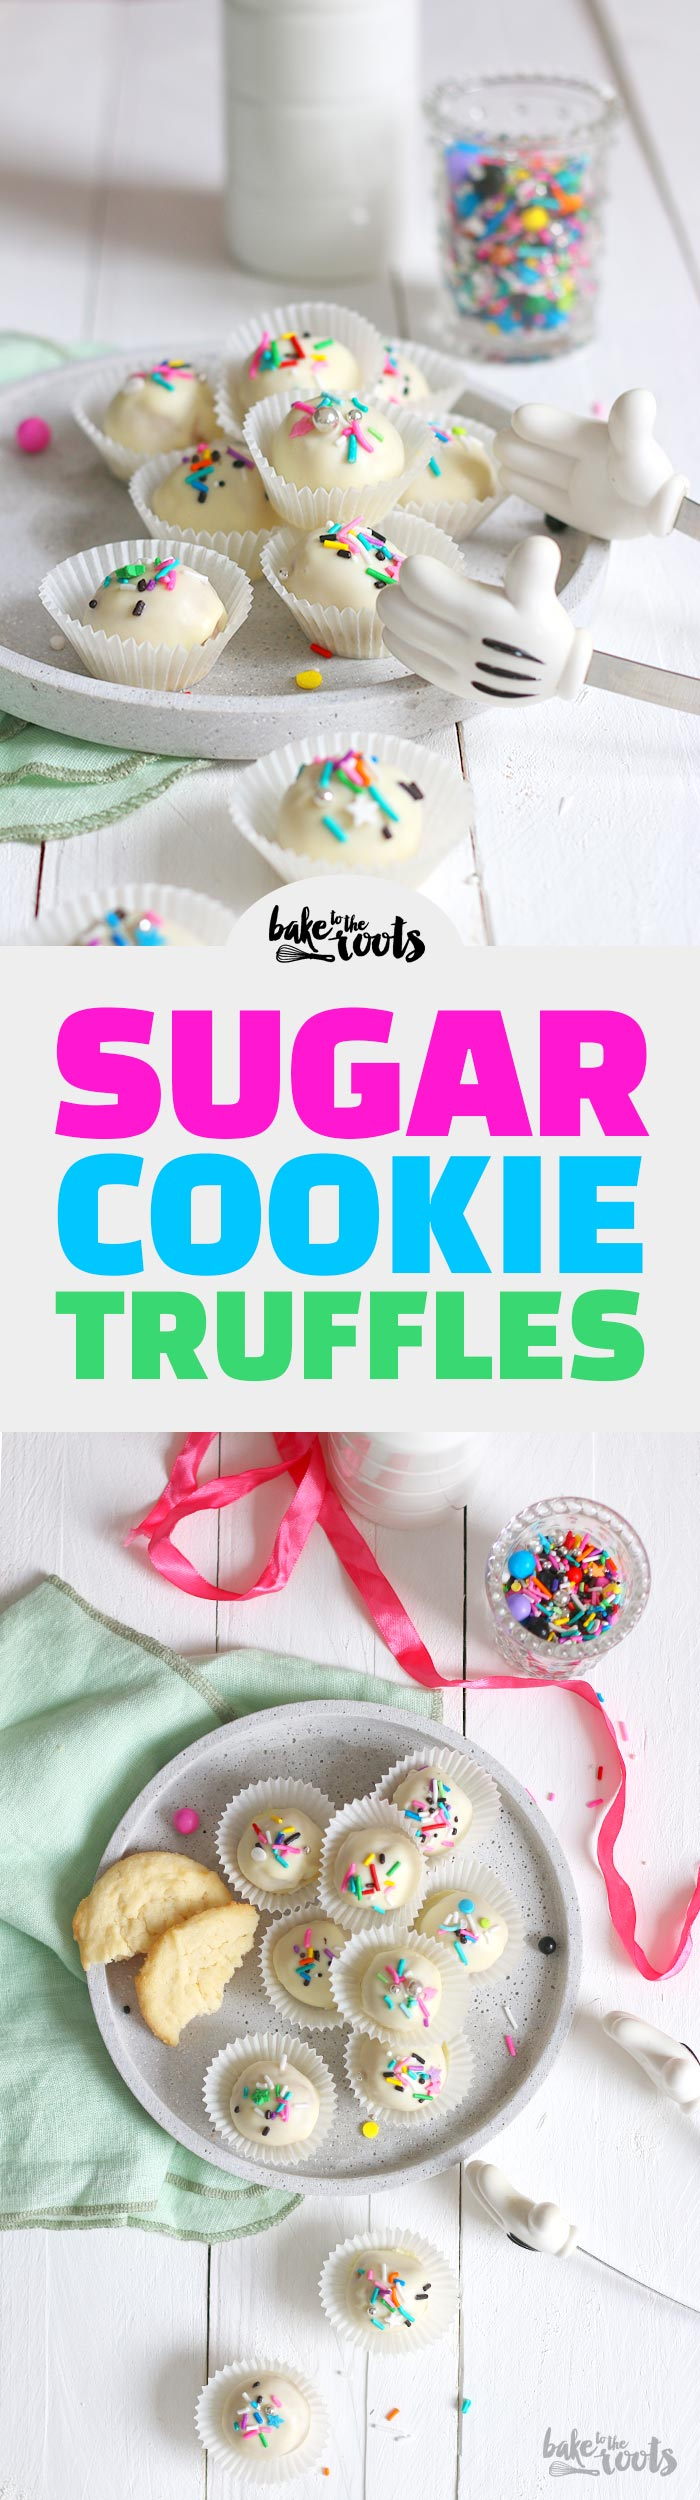 Sugar Cookie Truffles | Bake to the roots